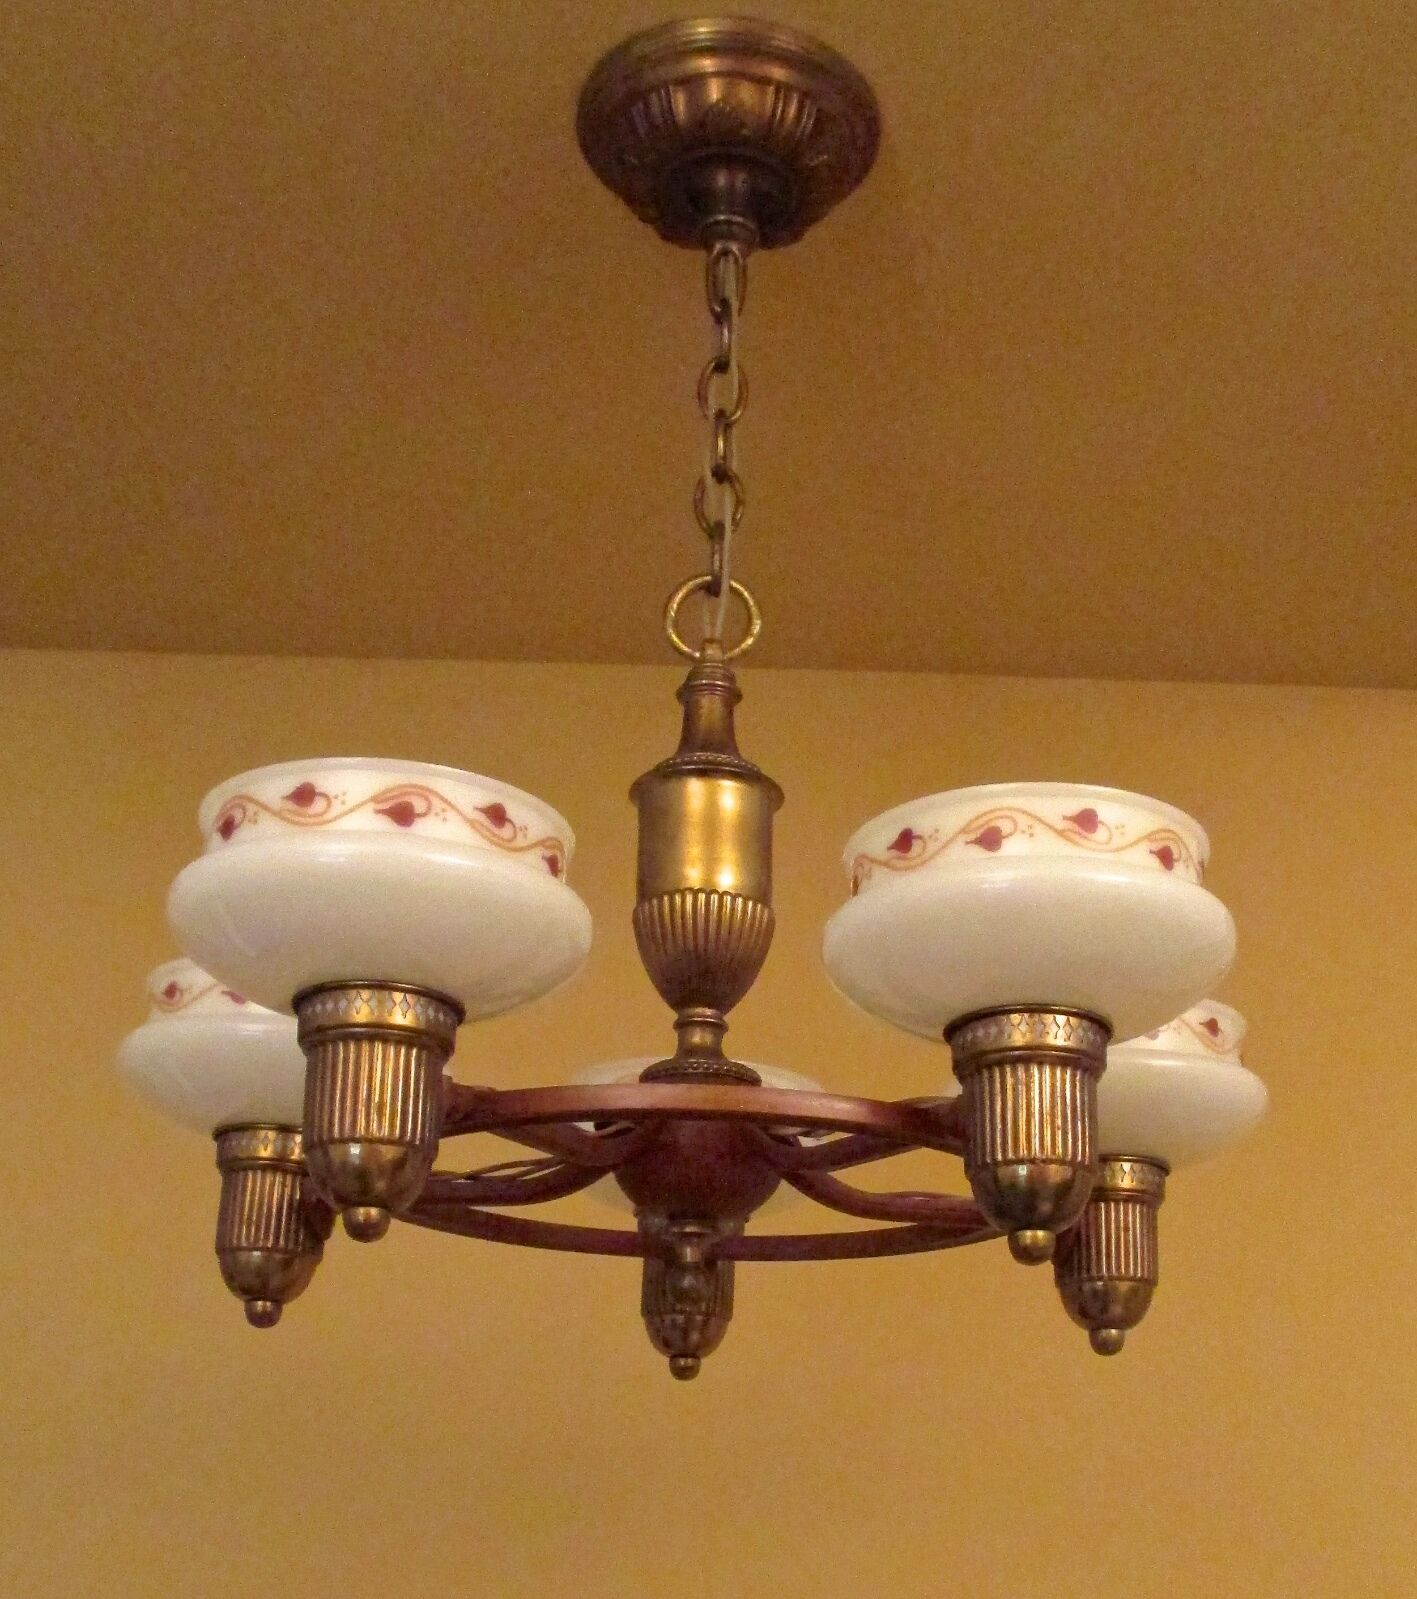 Vintage Lighting 1930s Lightolier chandelier